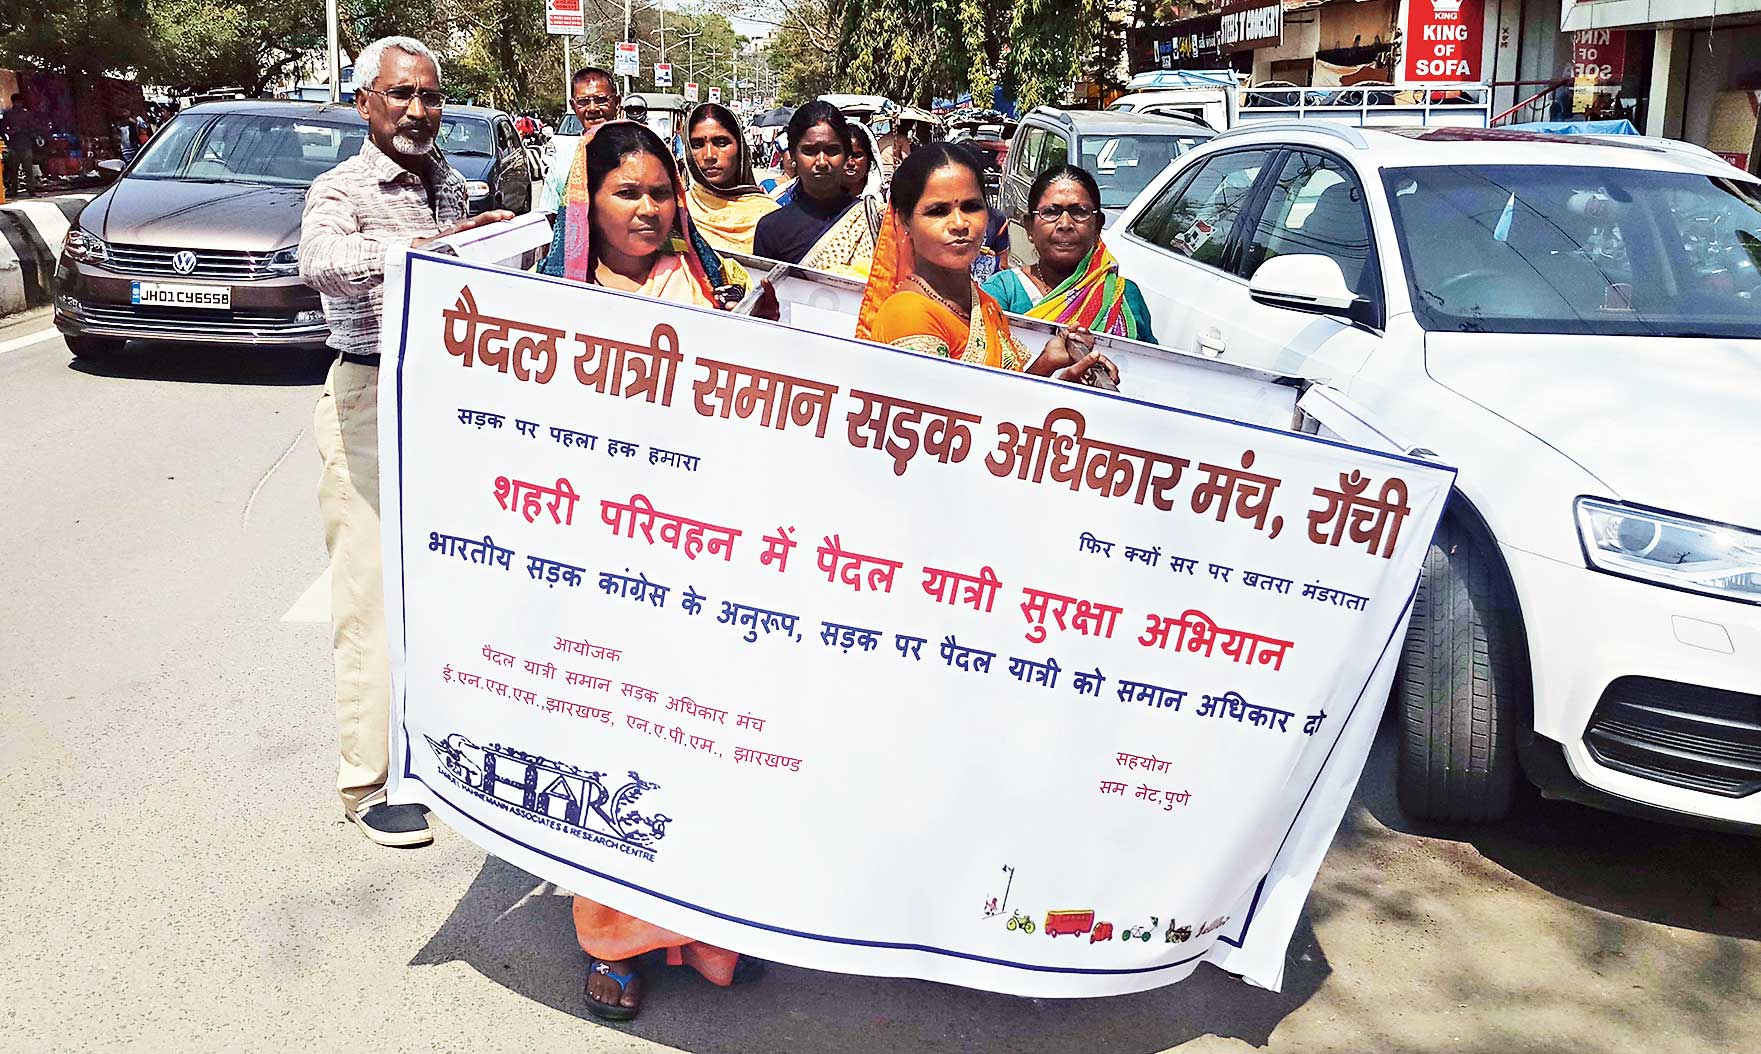 Women take part in the rally to fight for the rights of pedestrians in Ranchi on Saturday.